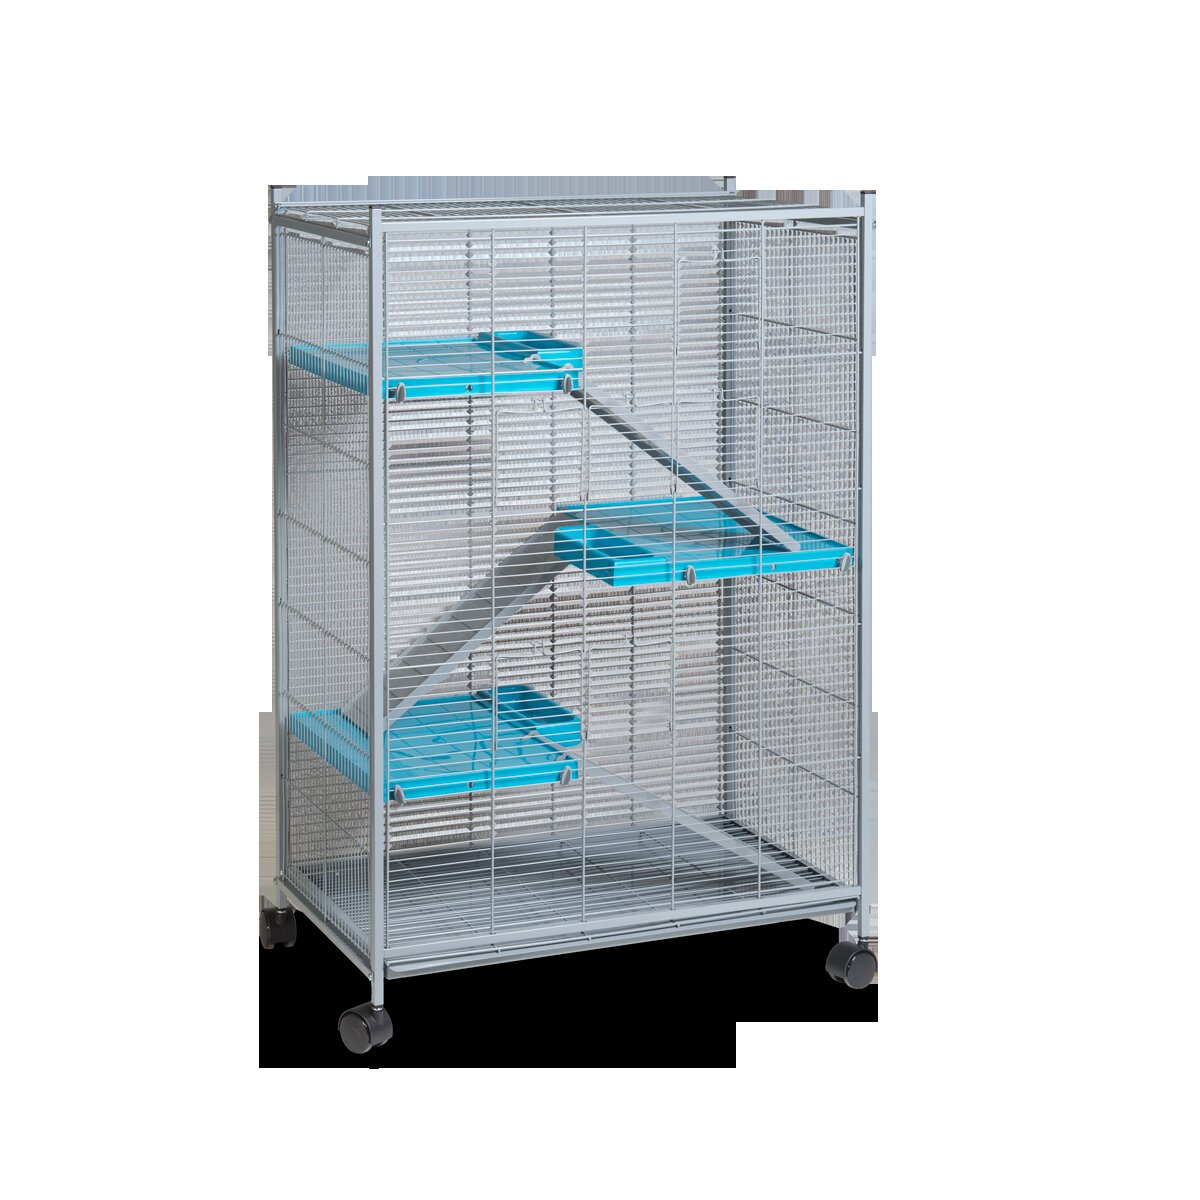 Voltrega Hamster Cage in Grey and Pistacho | Wayfair.co.uk